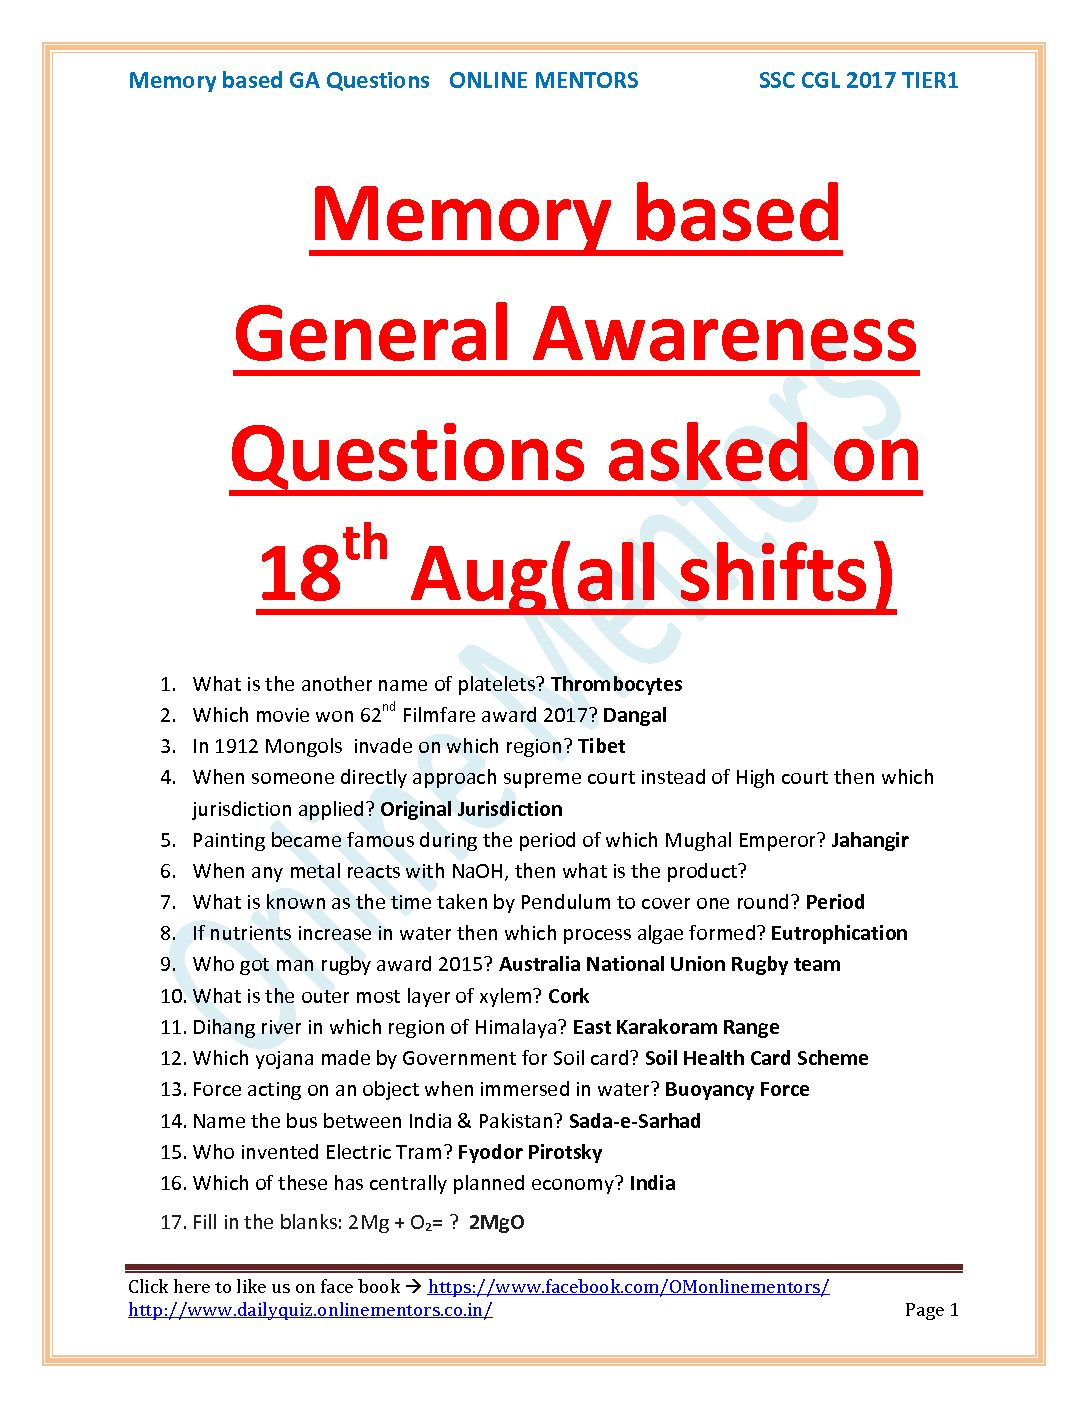 18 Aug all shift memory based GK questions asked in SSC CGL 2017